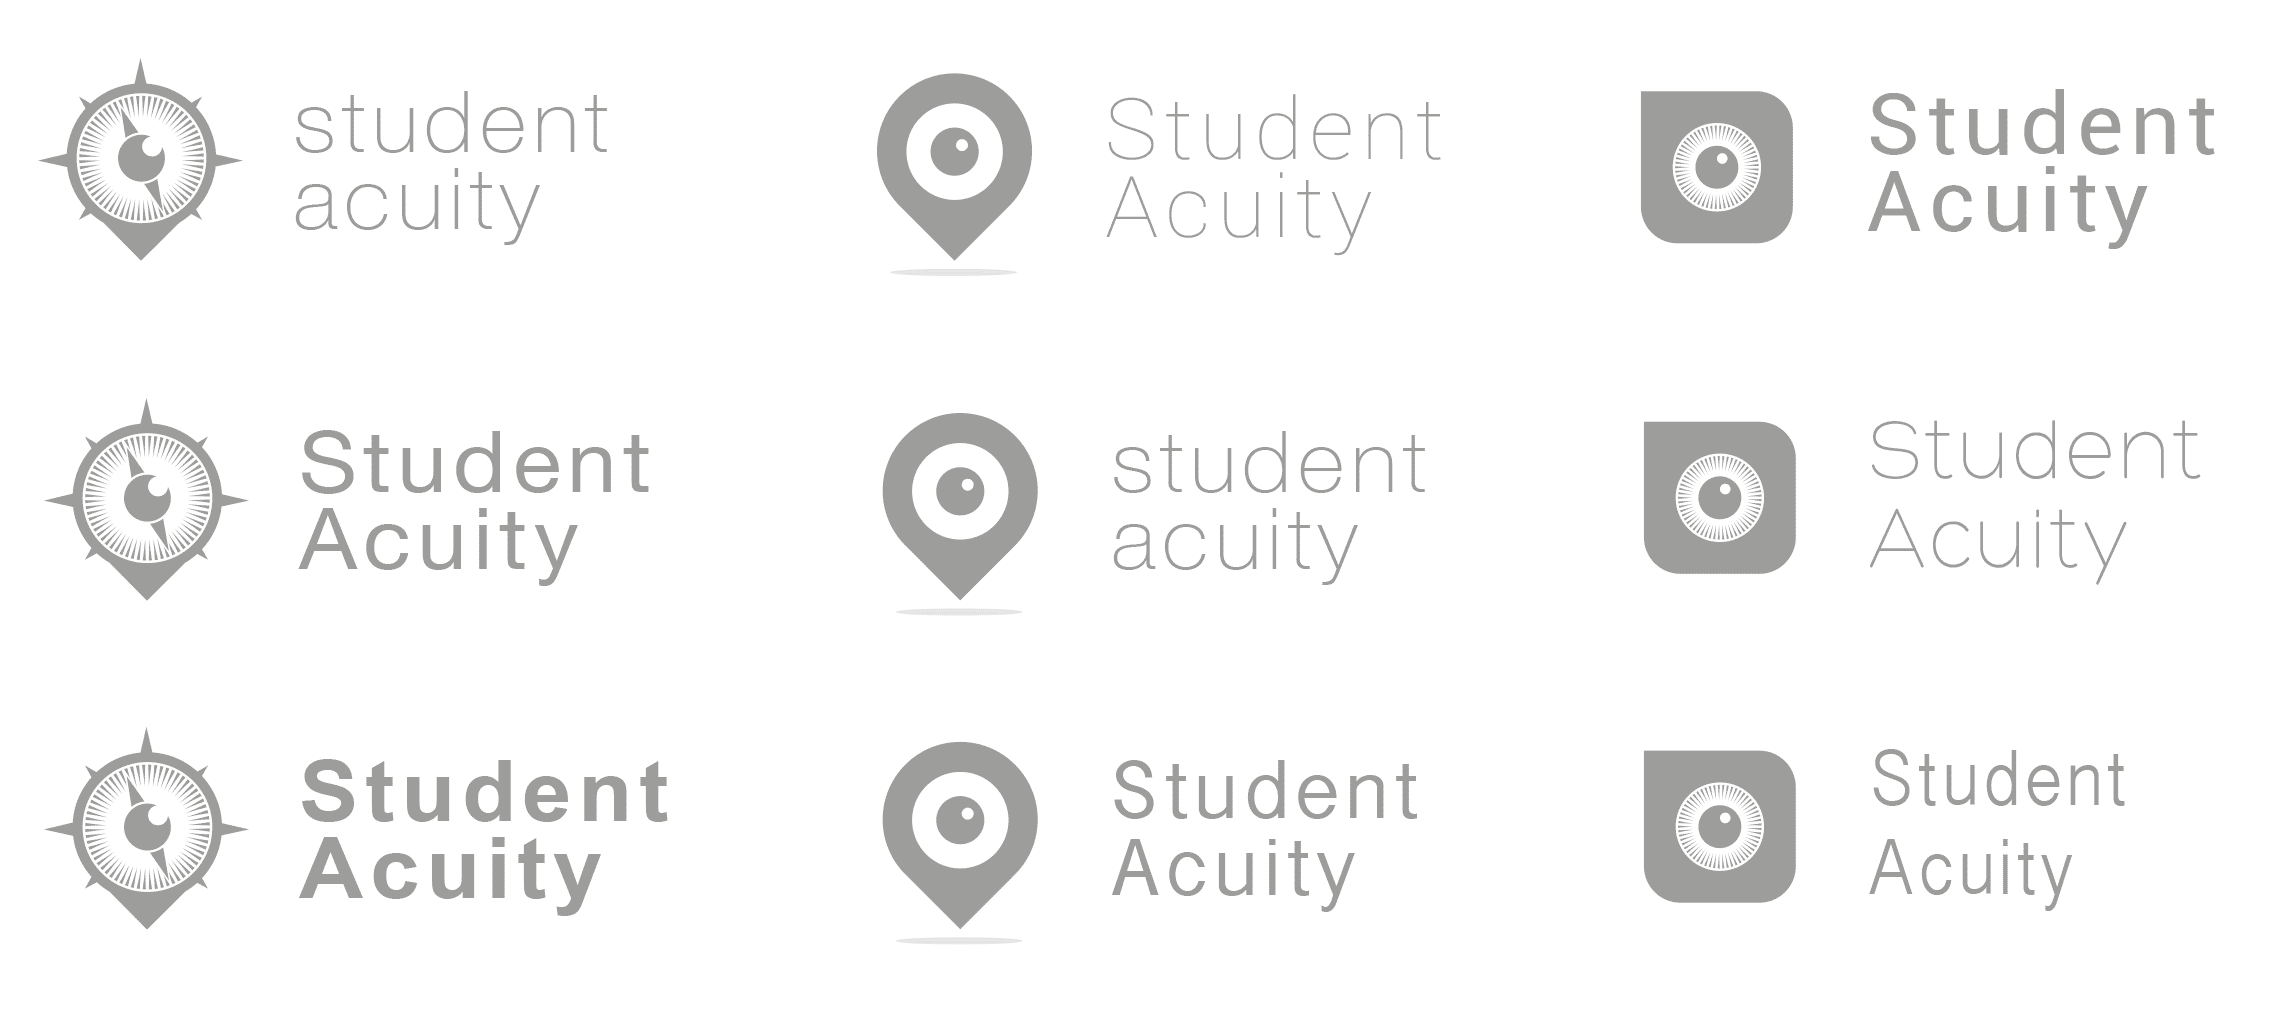 Student Acuity 4